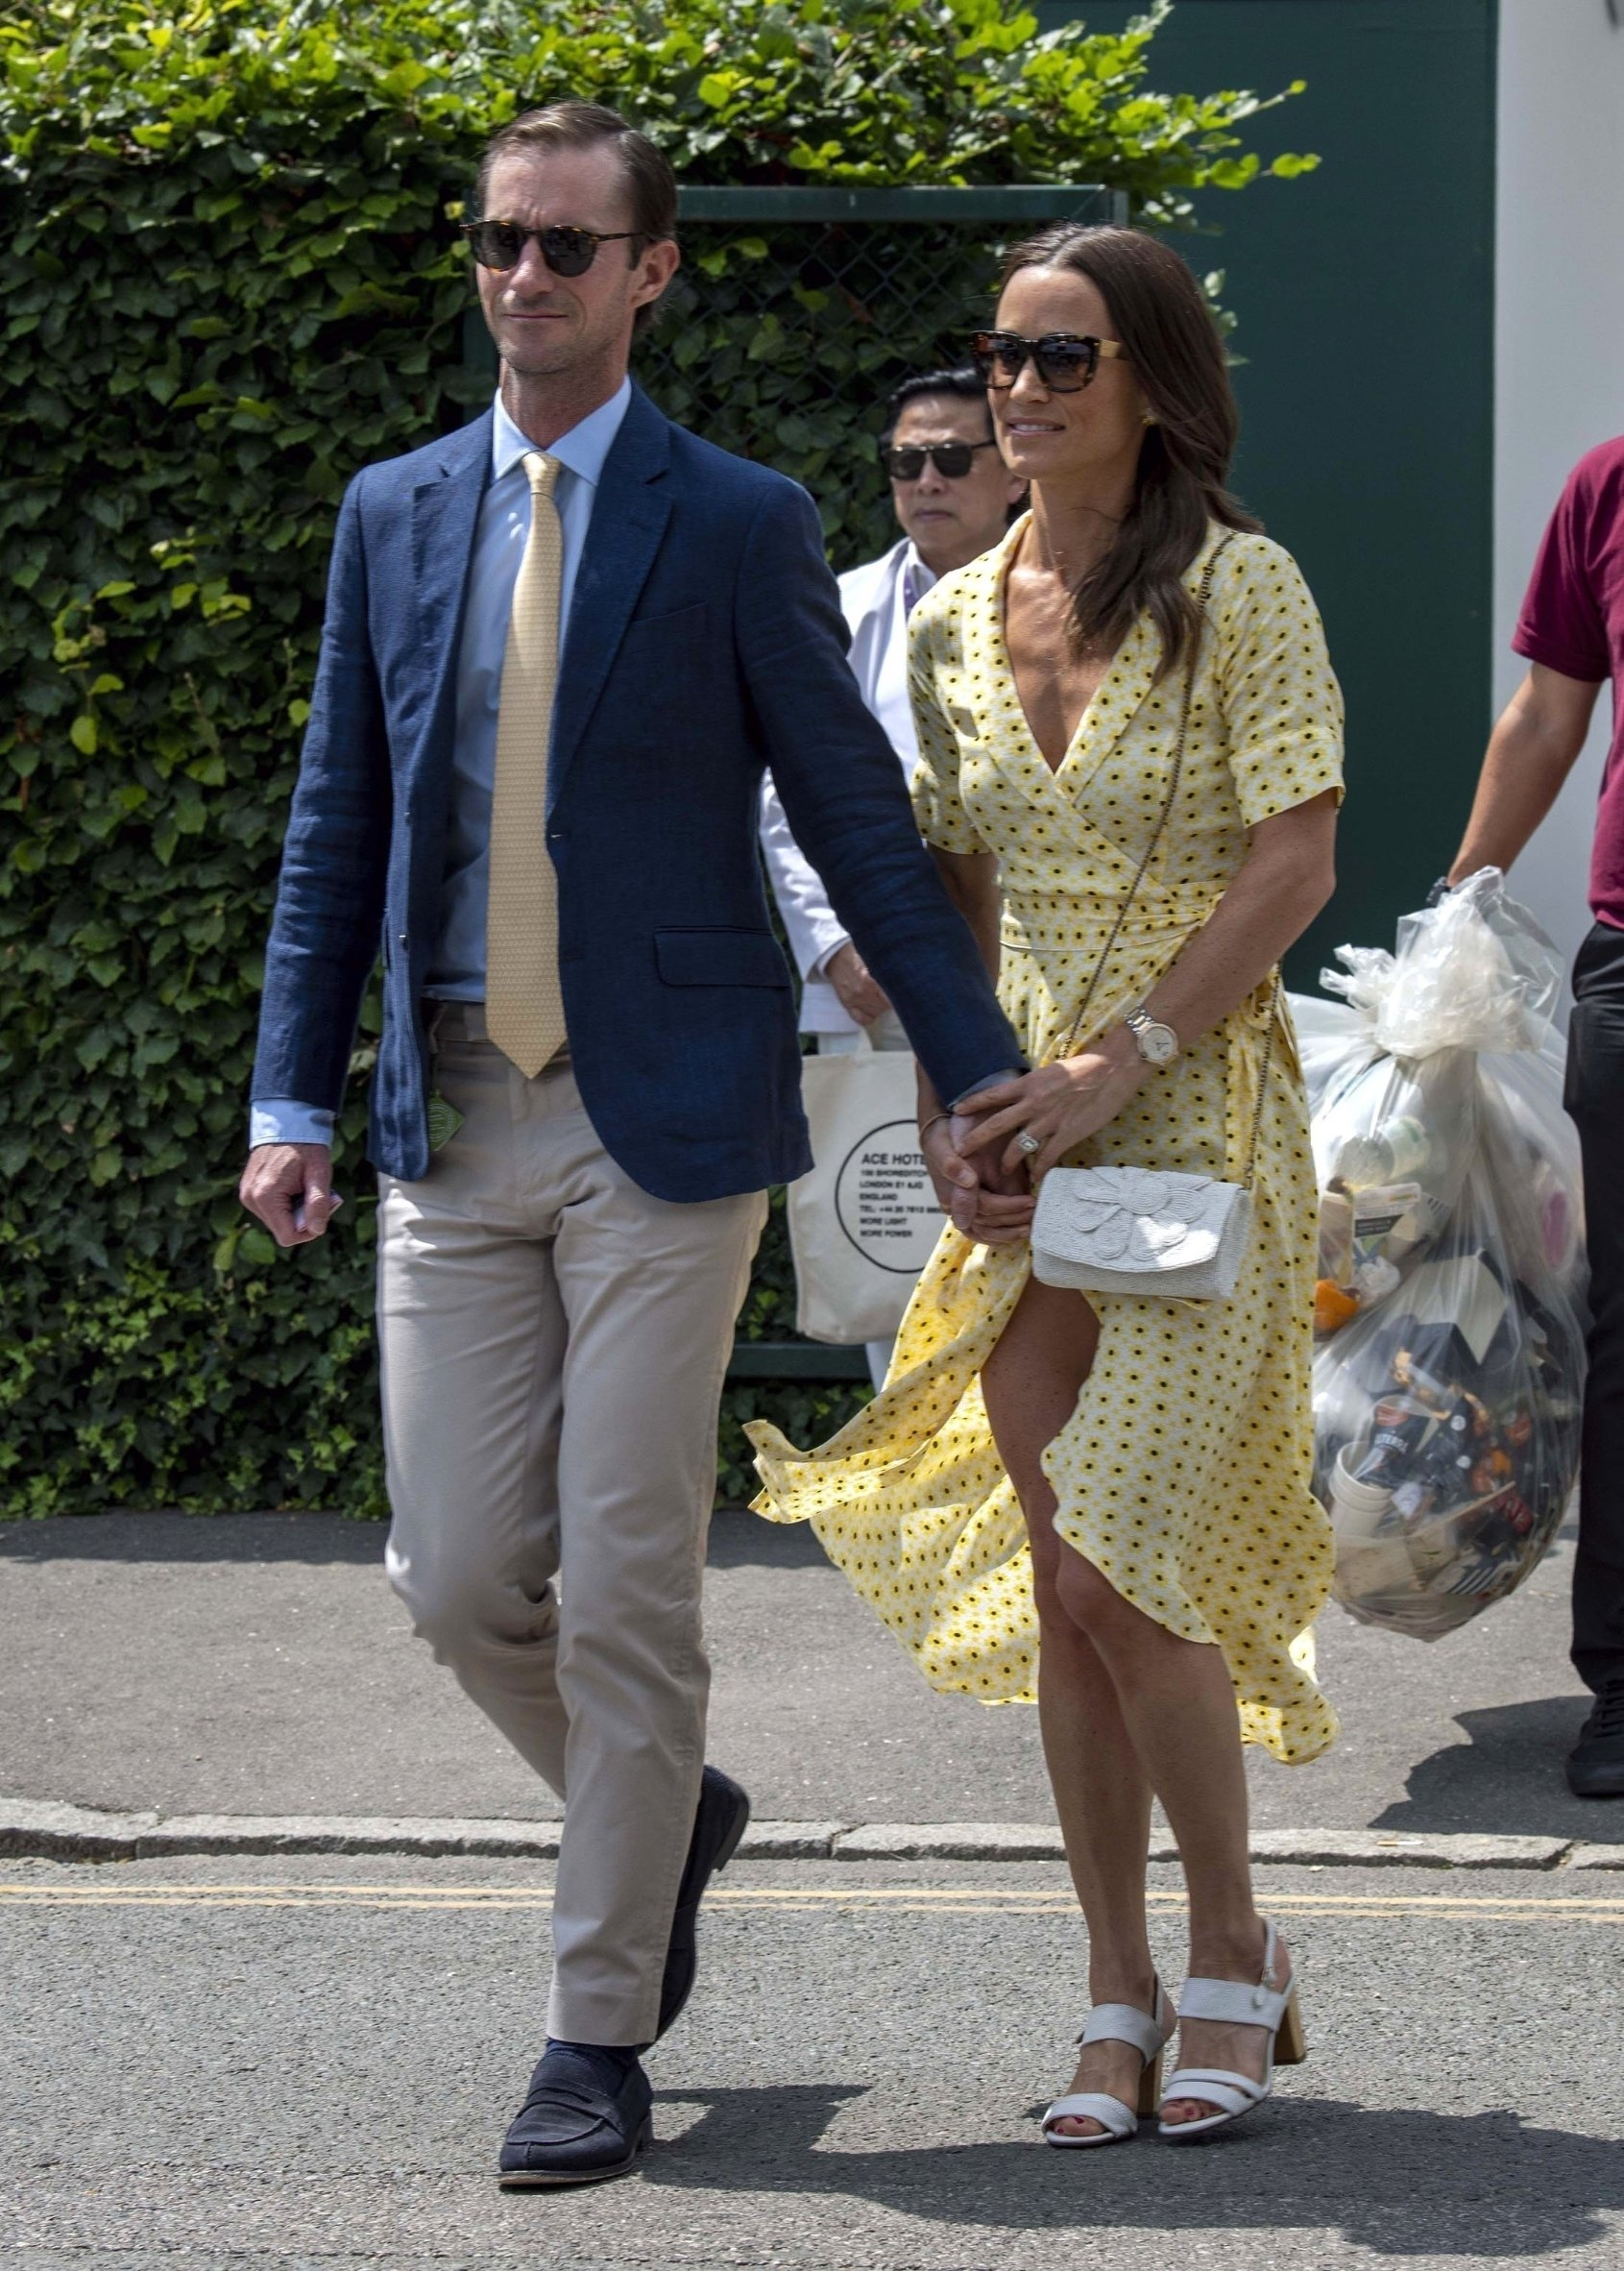 London, UNITED KINGDOM  -  Pippa Matthews (Middleton) and James Matthews arrive at the 2019 Wimbledon Lawn Tennis Championships.  *UK Clients - Pictures Containing Children Please Pixelate Face Prior To Publication*, Image: 457927951, License: Rights-managed, Restrictions: , Model Release: no, Credit line: Profimedia, Backgrid UK